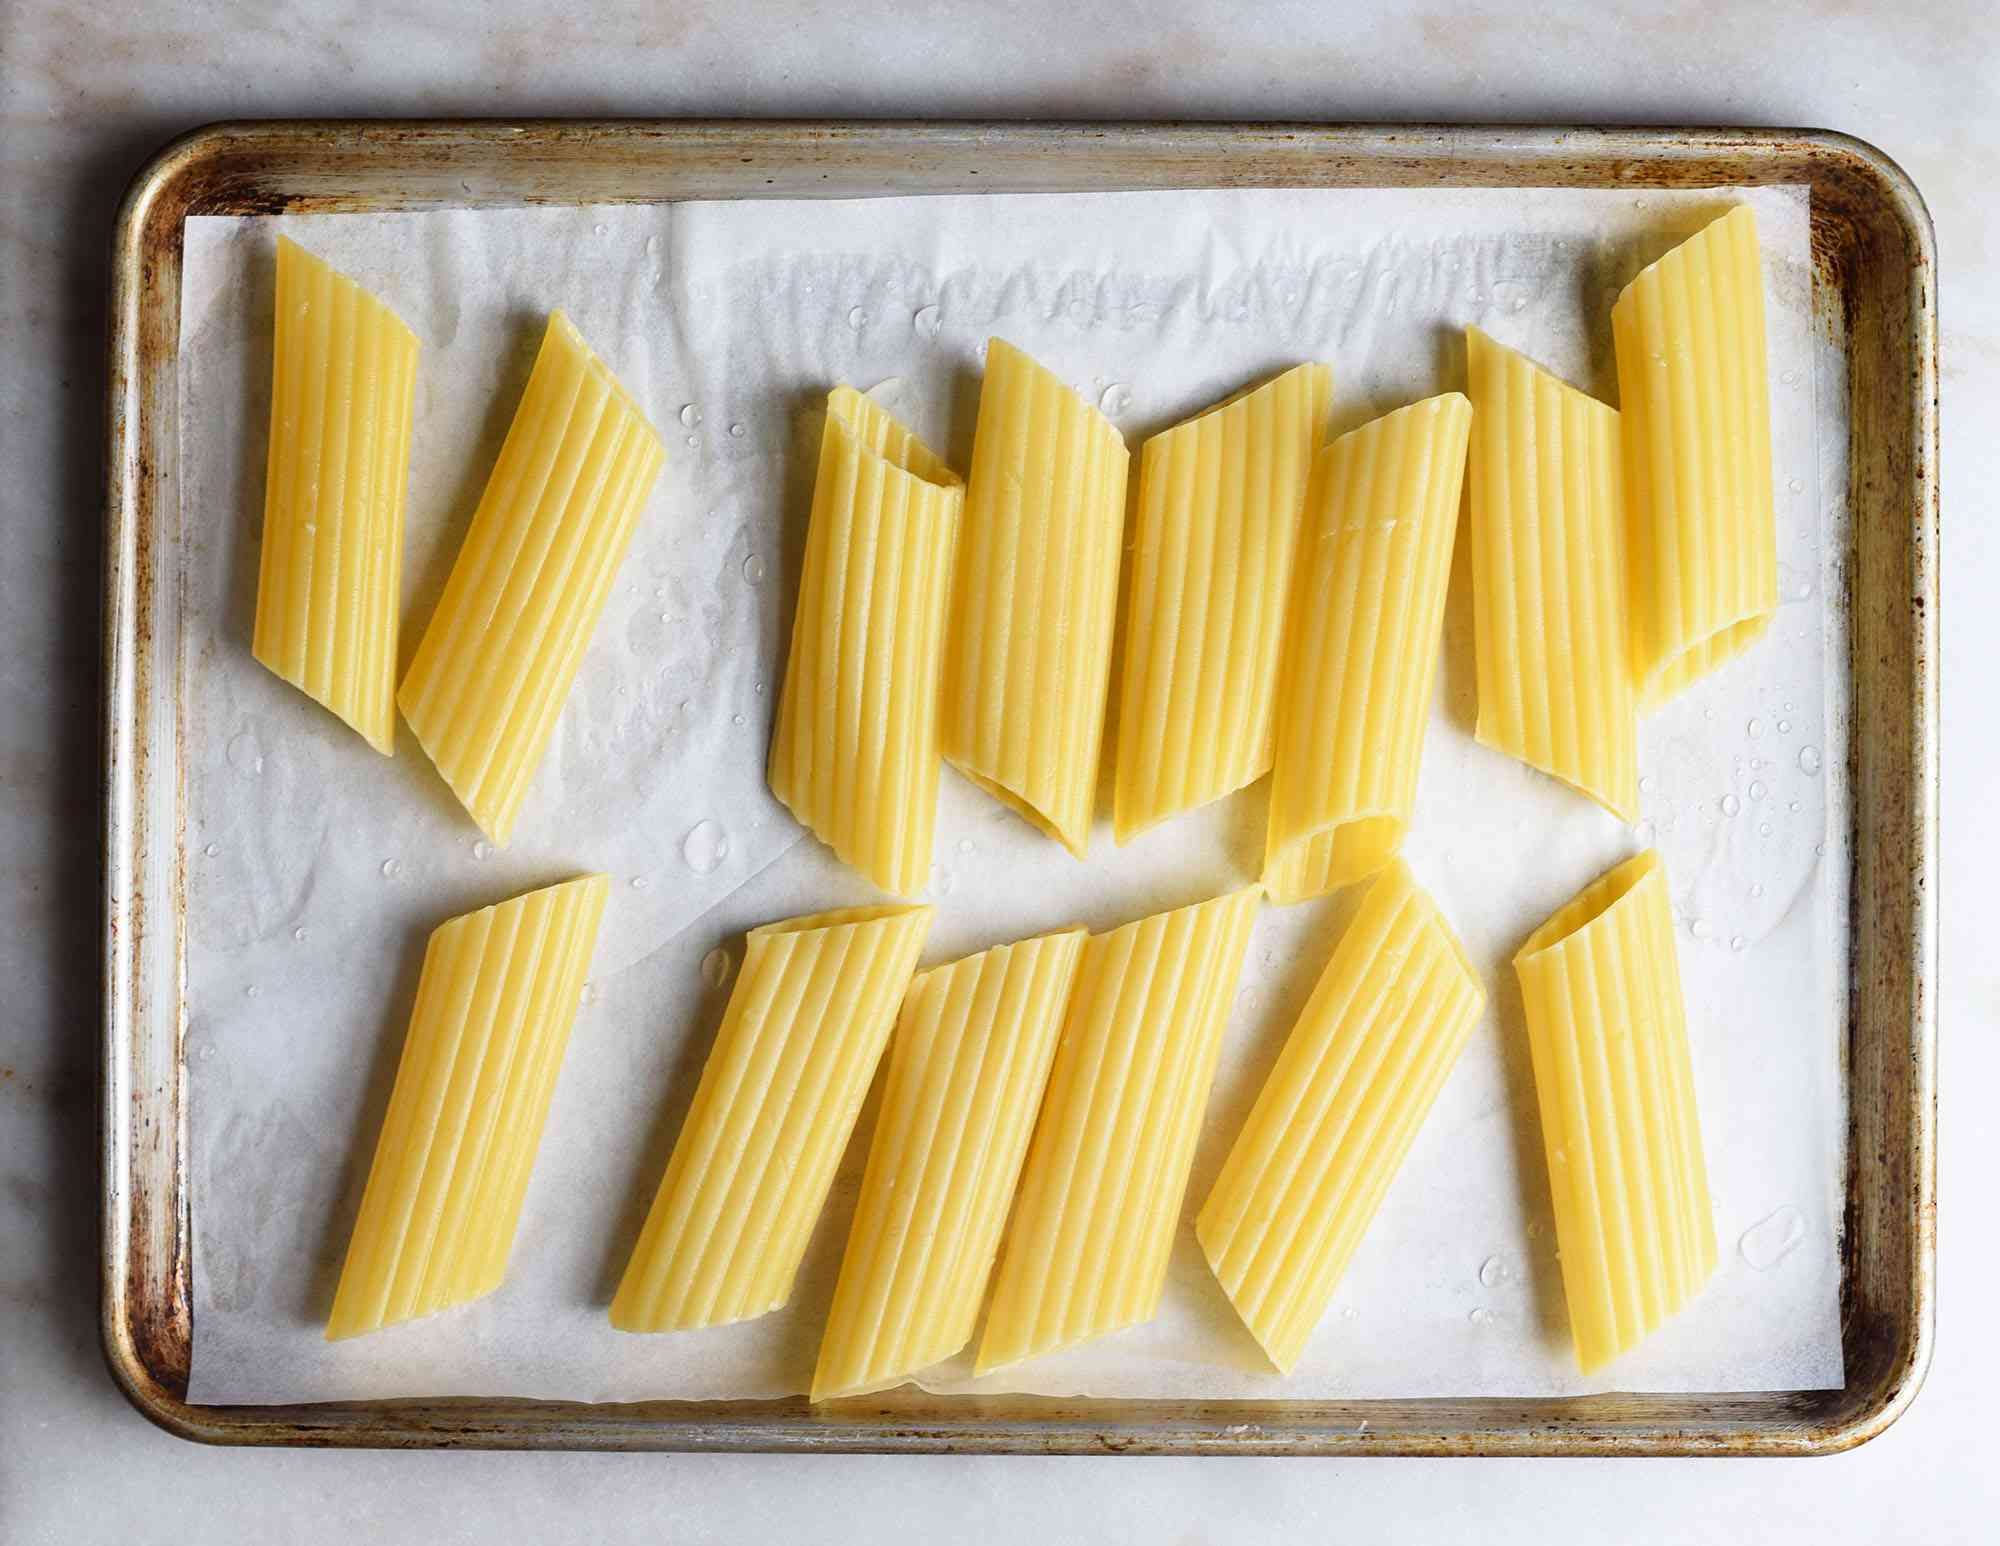 cooked manicotti noodles on a baking sheet